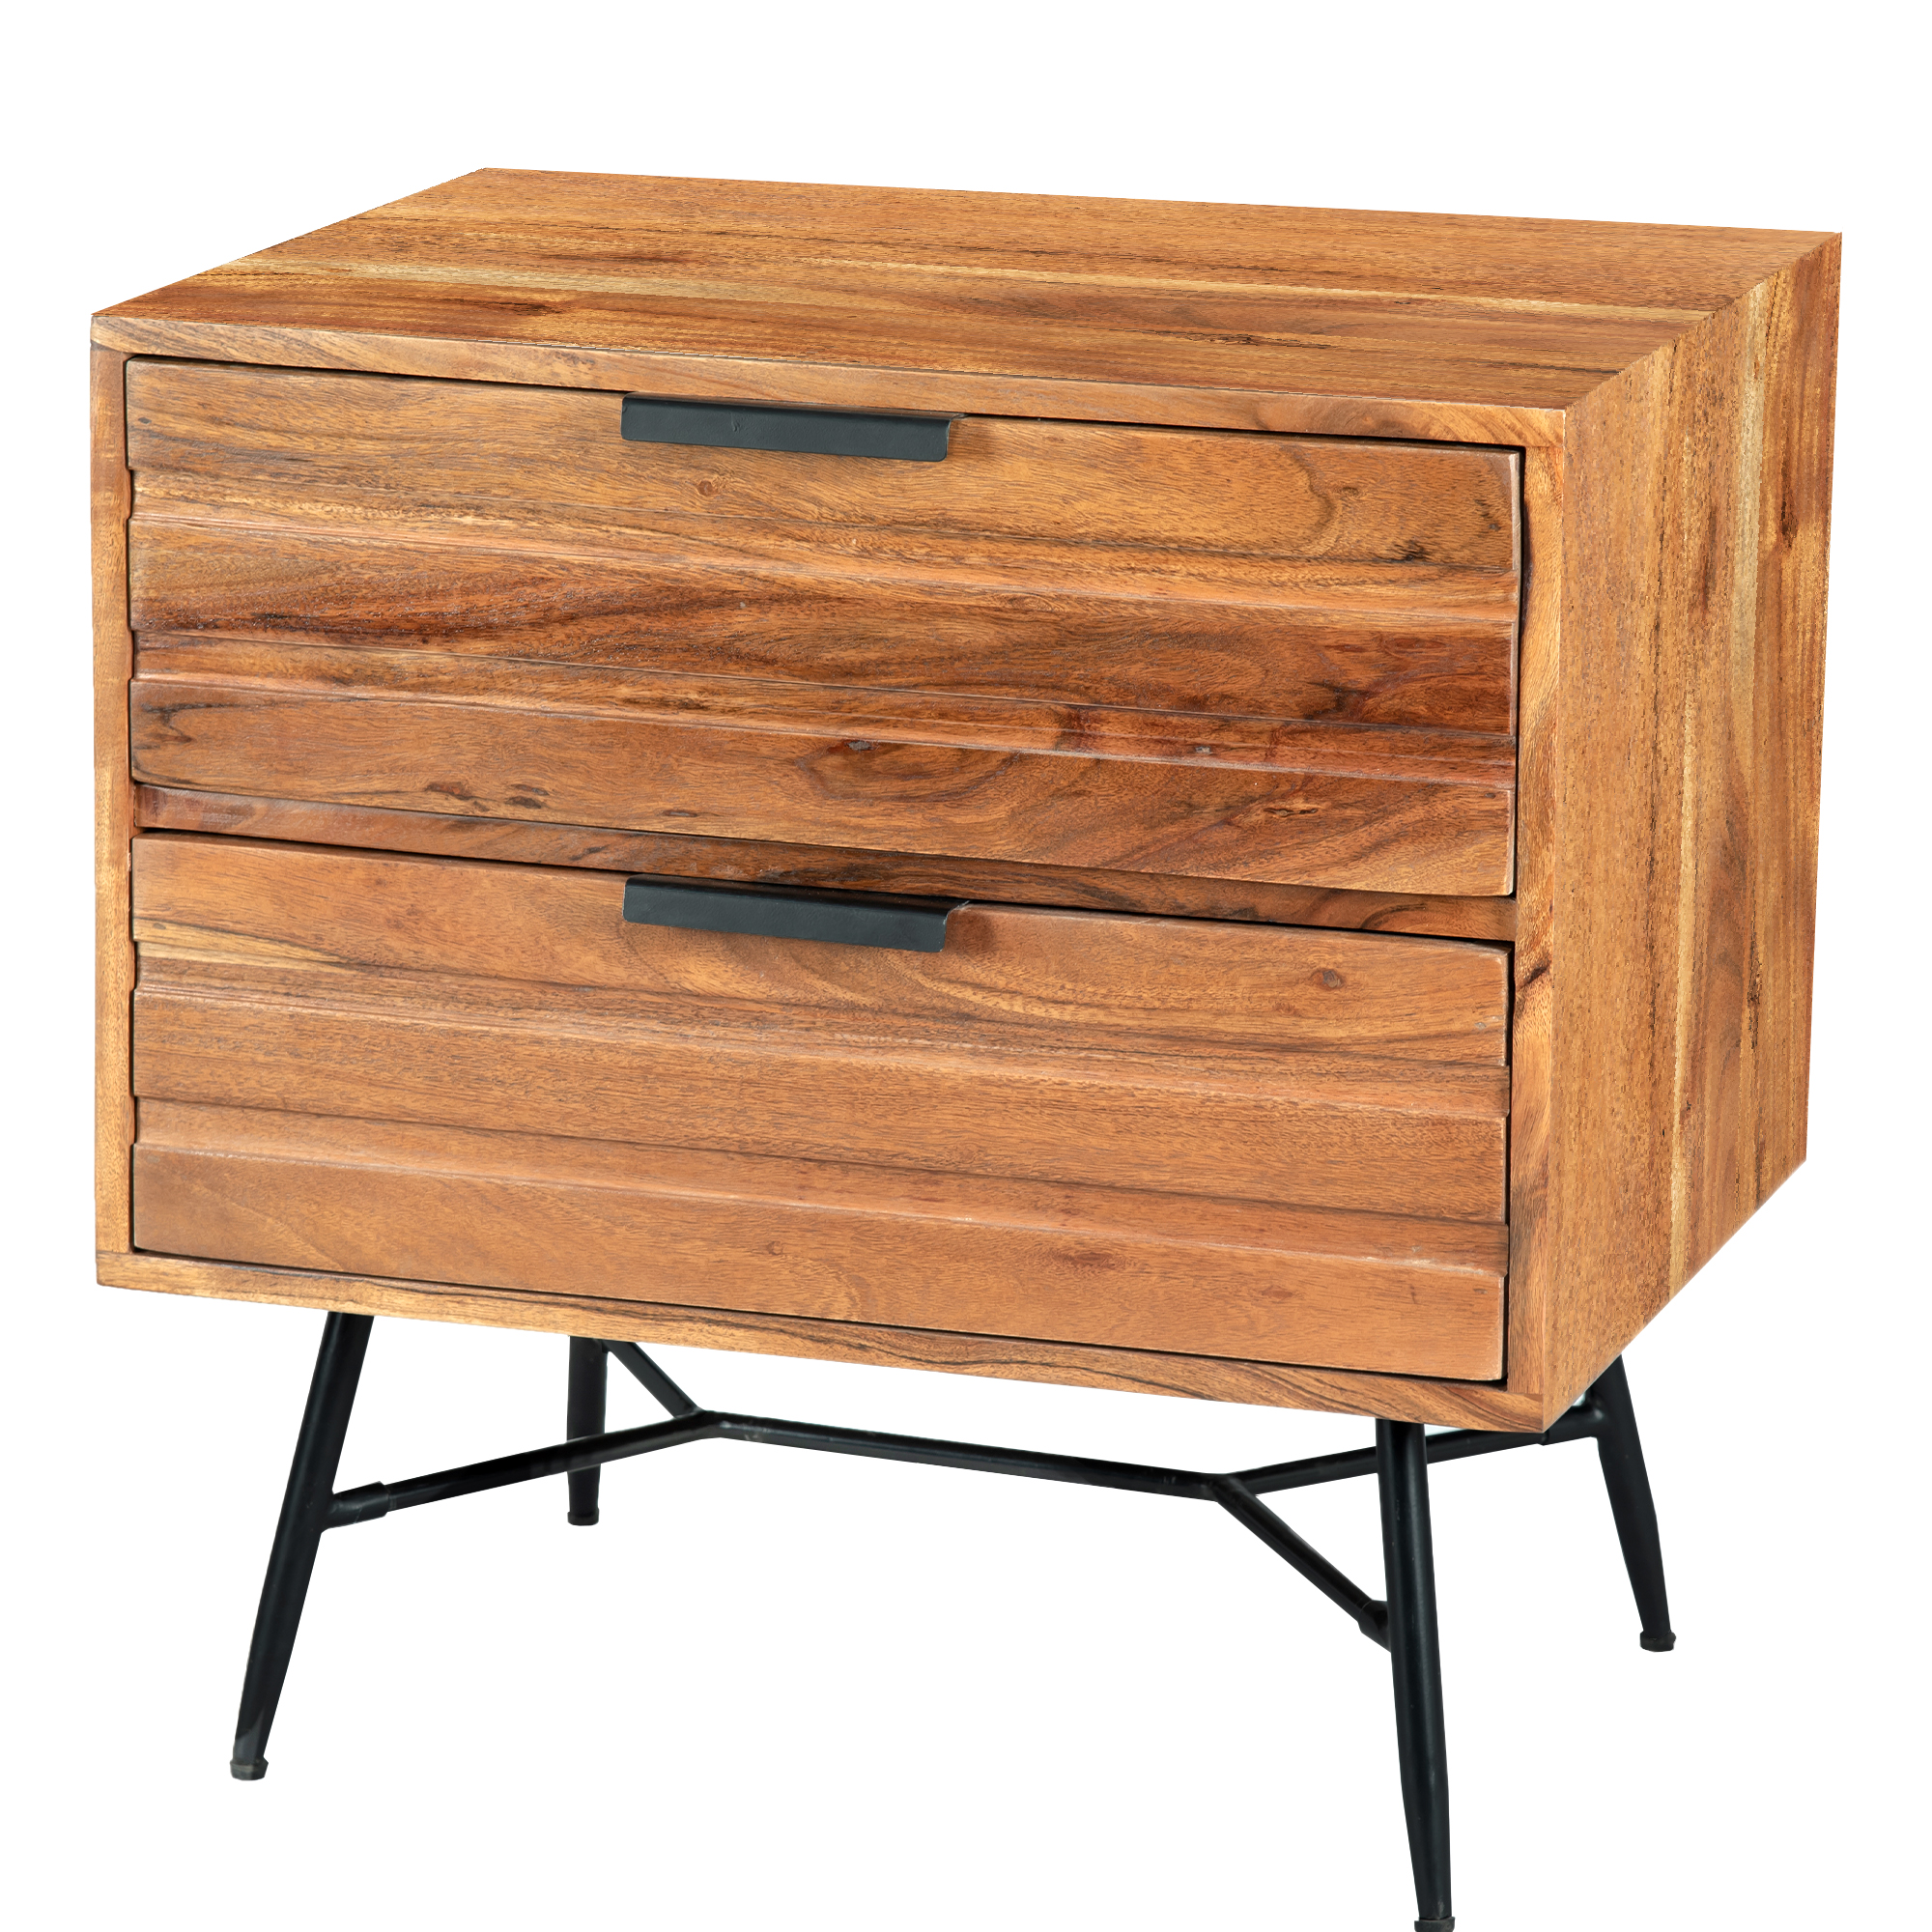 2 Drawer Wooden Nightstand with Metal Angled Legs, Black and Brown